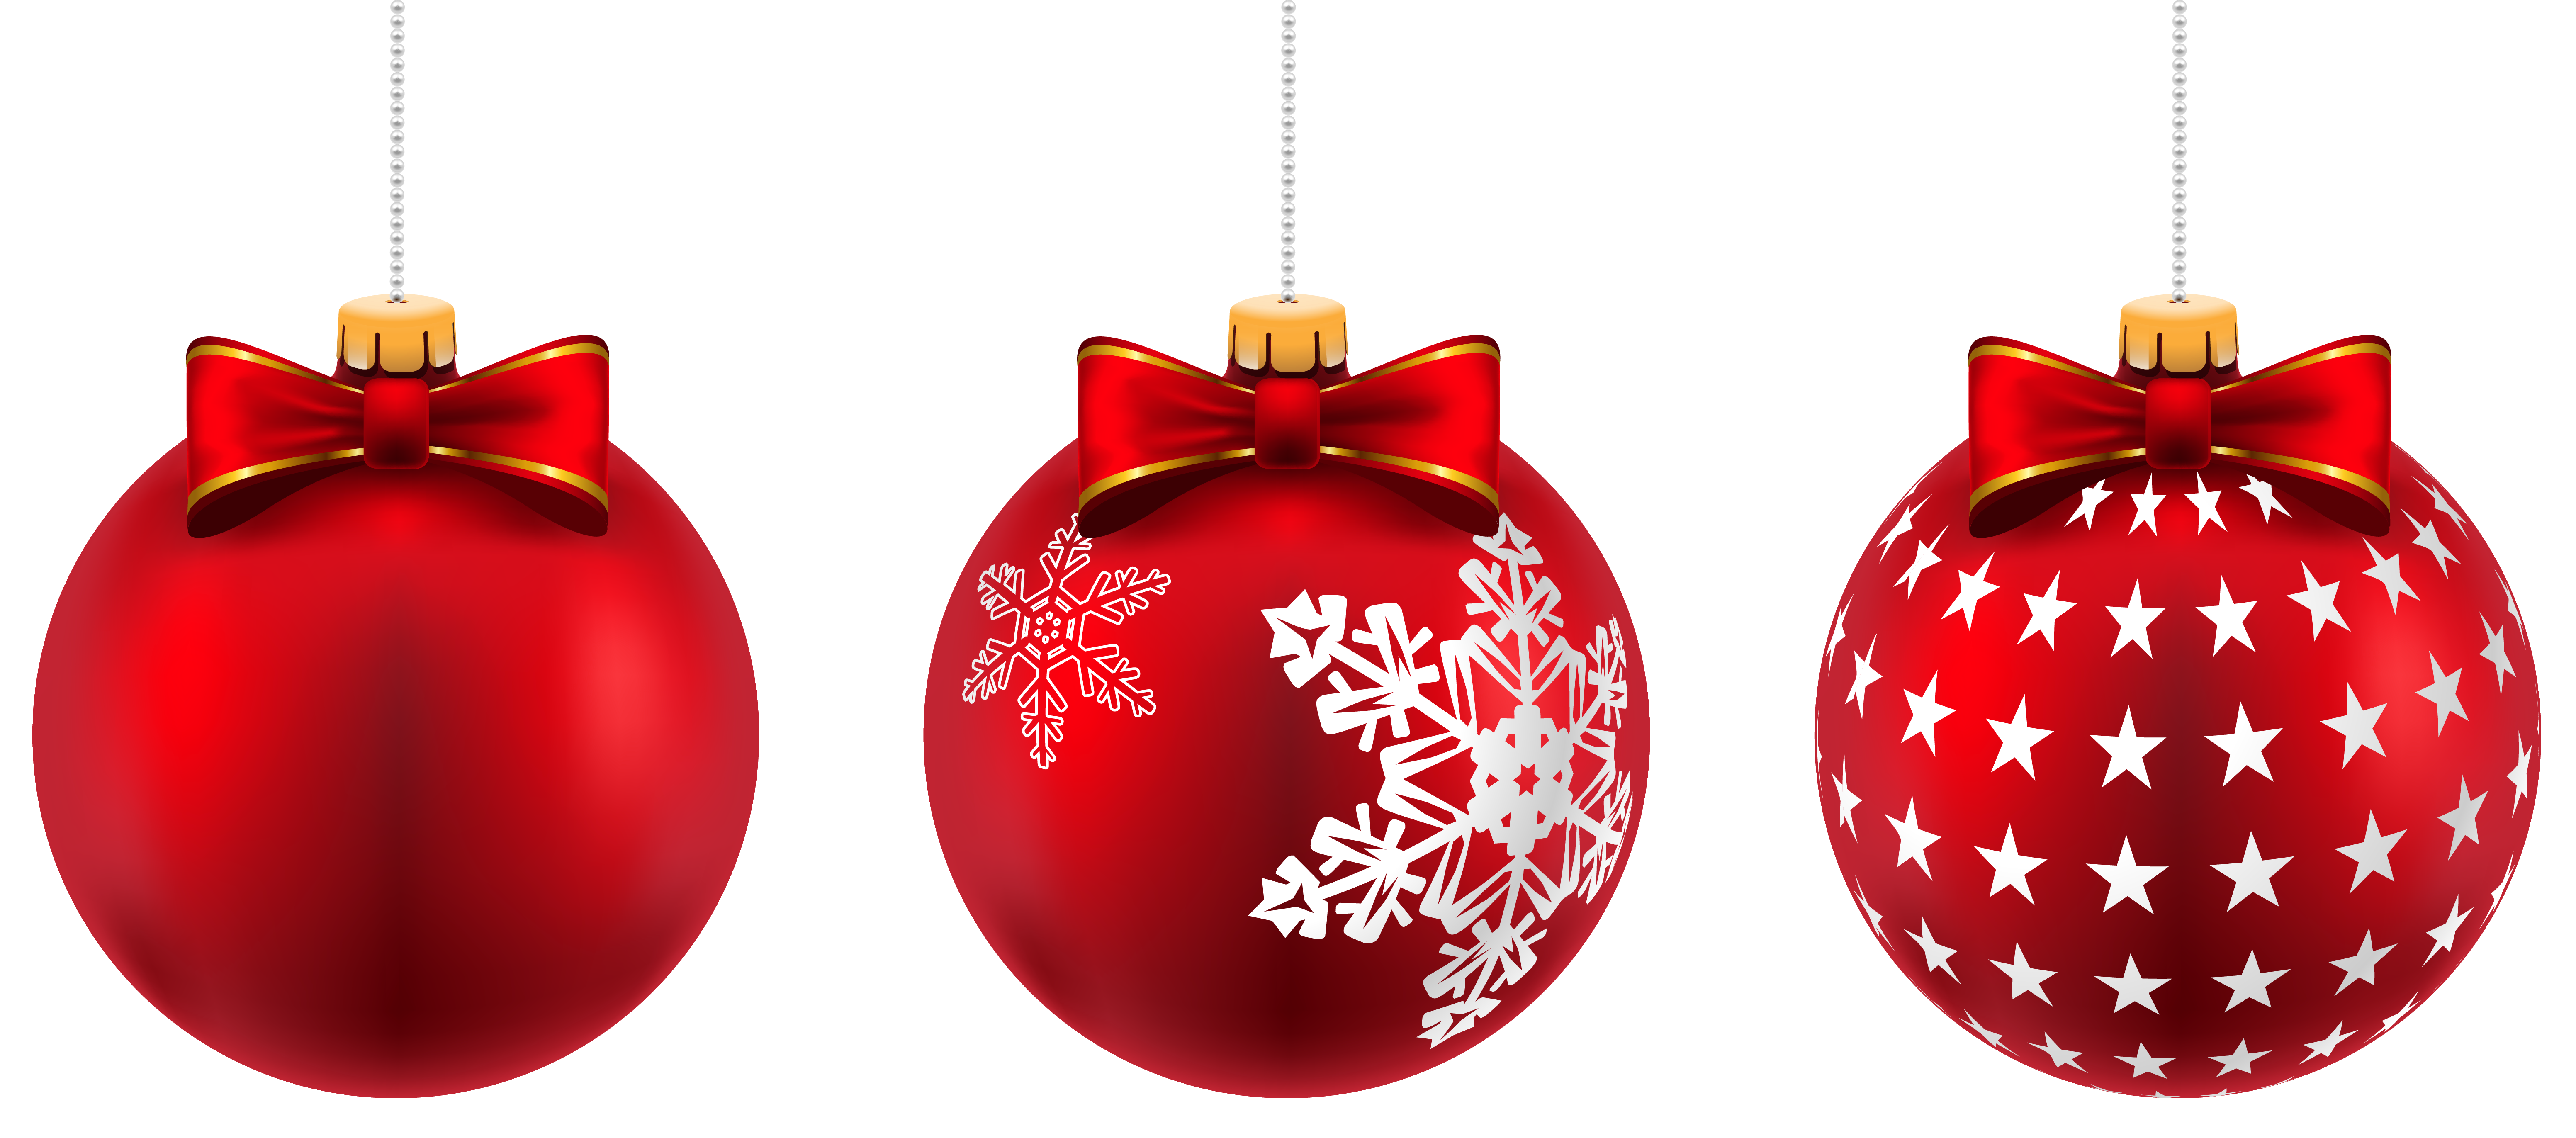 Beautiful red christmas png. Holiday clipart balls